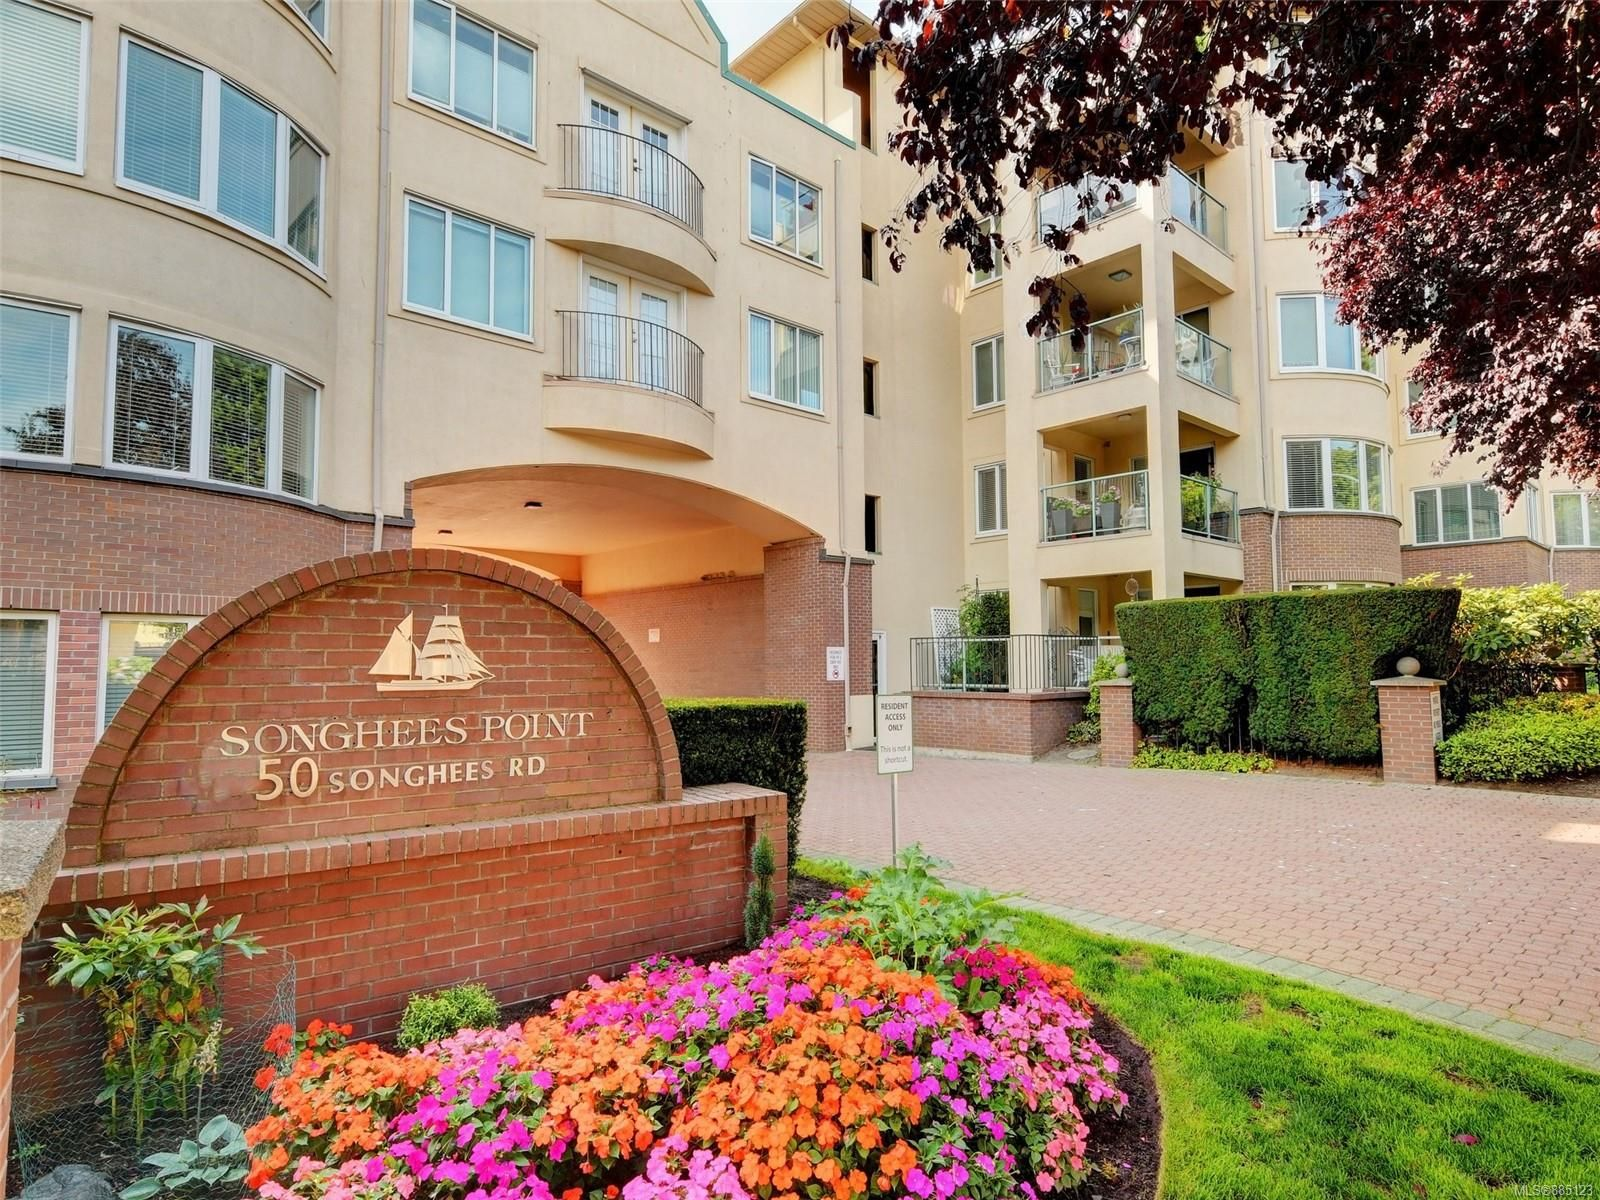 Main Photo: 518 50 Songhees Rd in : VW Songhees Condo for sale (Victoria West)  : MLS®# 885123